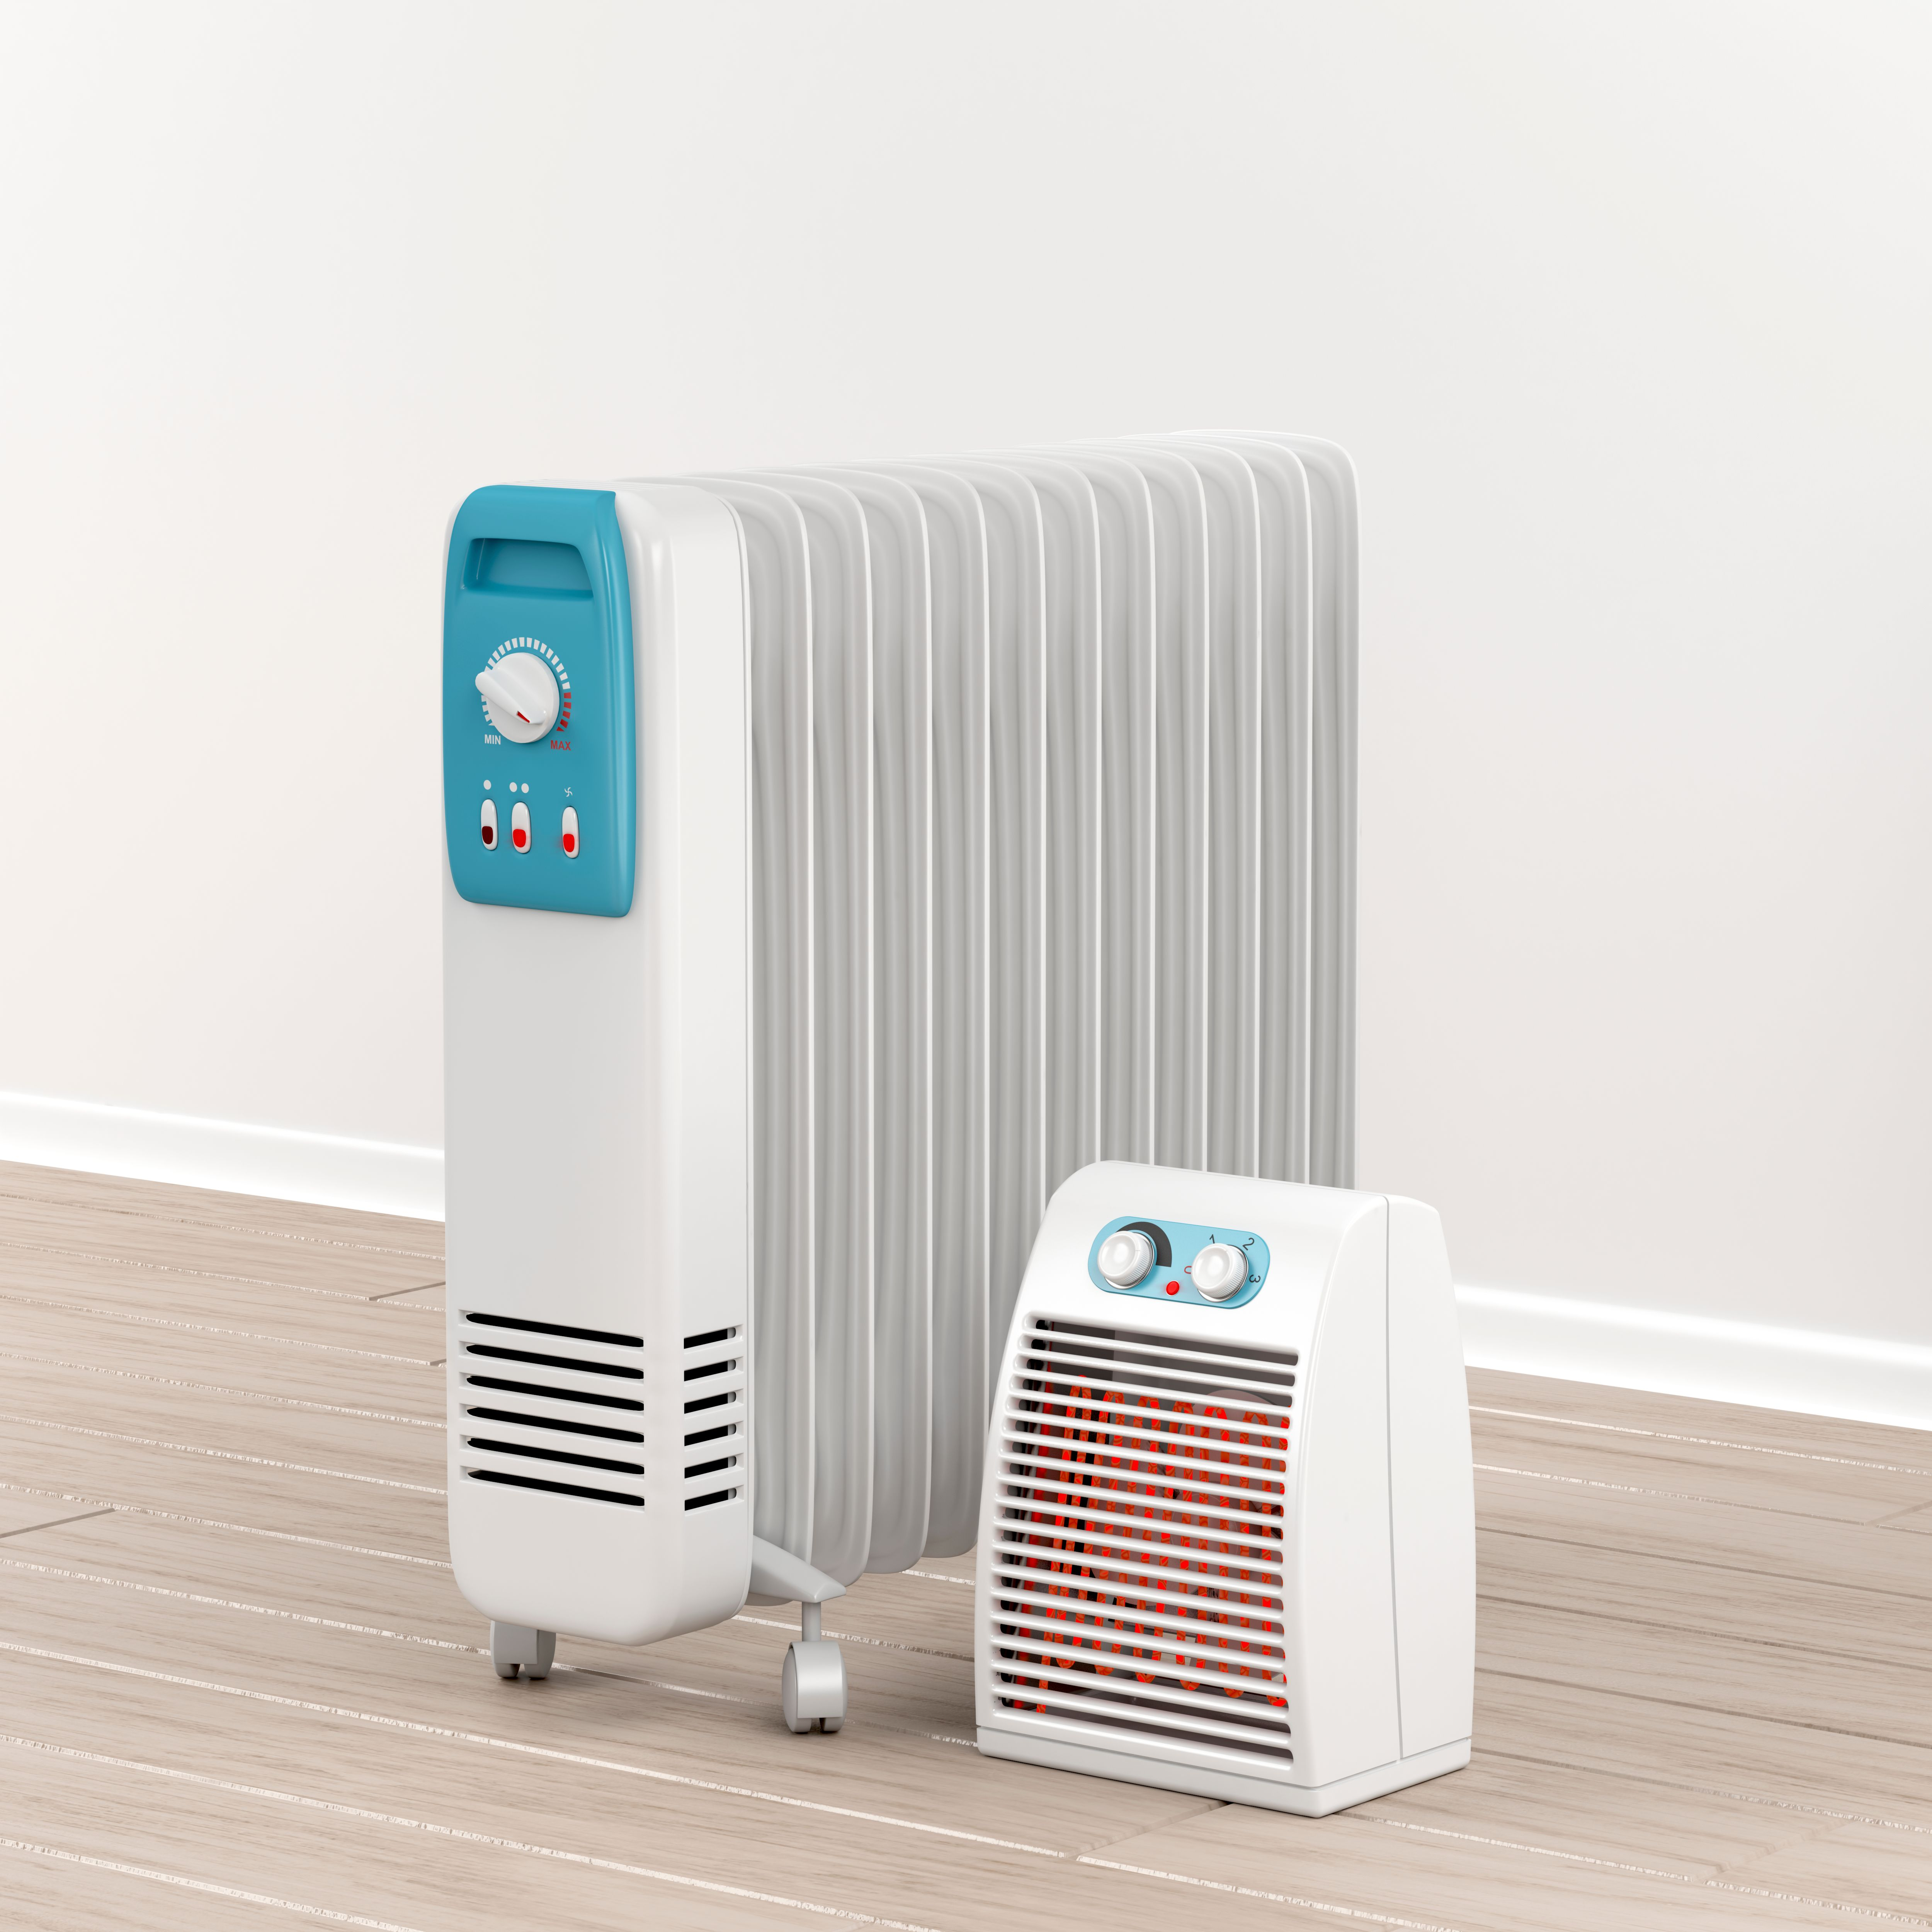 Two electric heaters on the ground